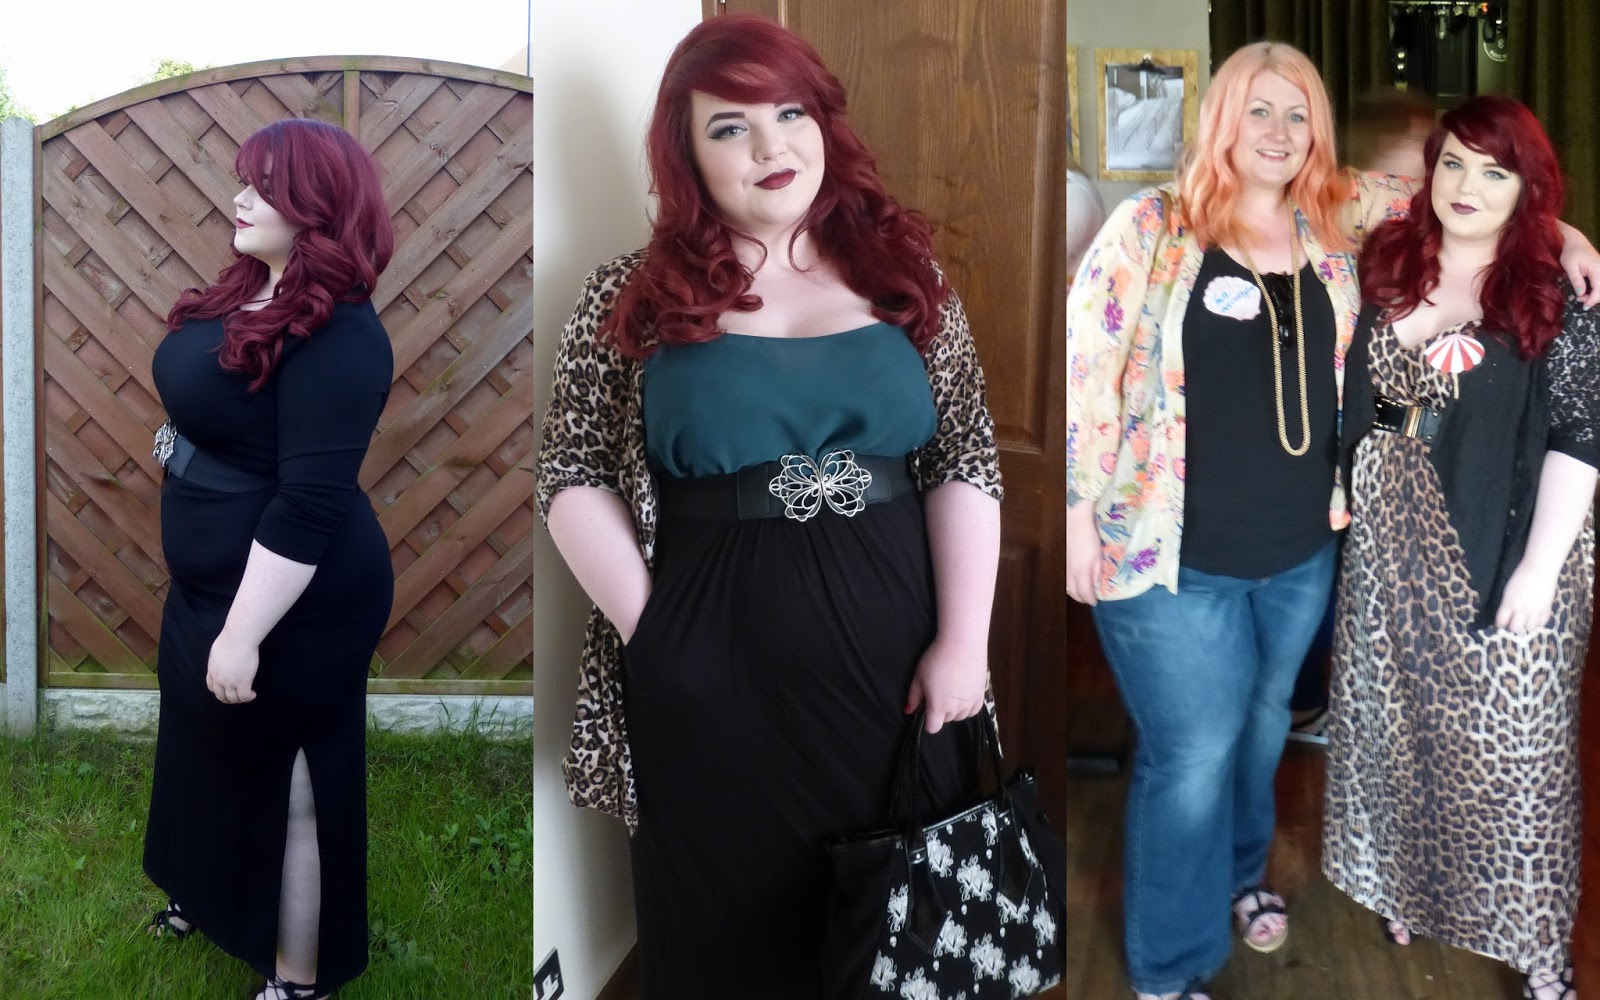 O'right hair - Looks Fantastic results, red hair, plus size, georgina grogan